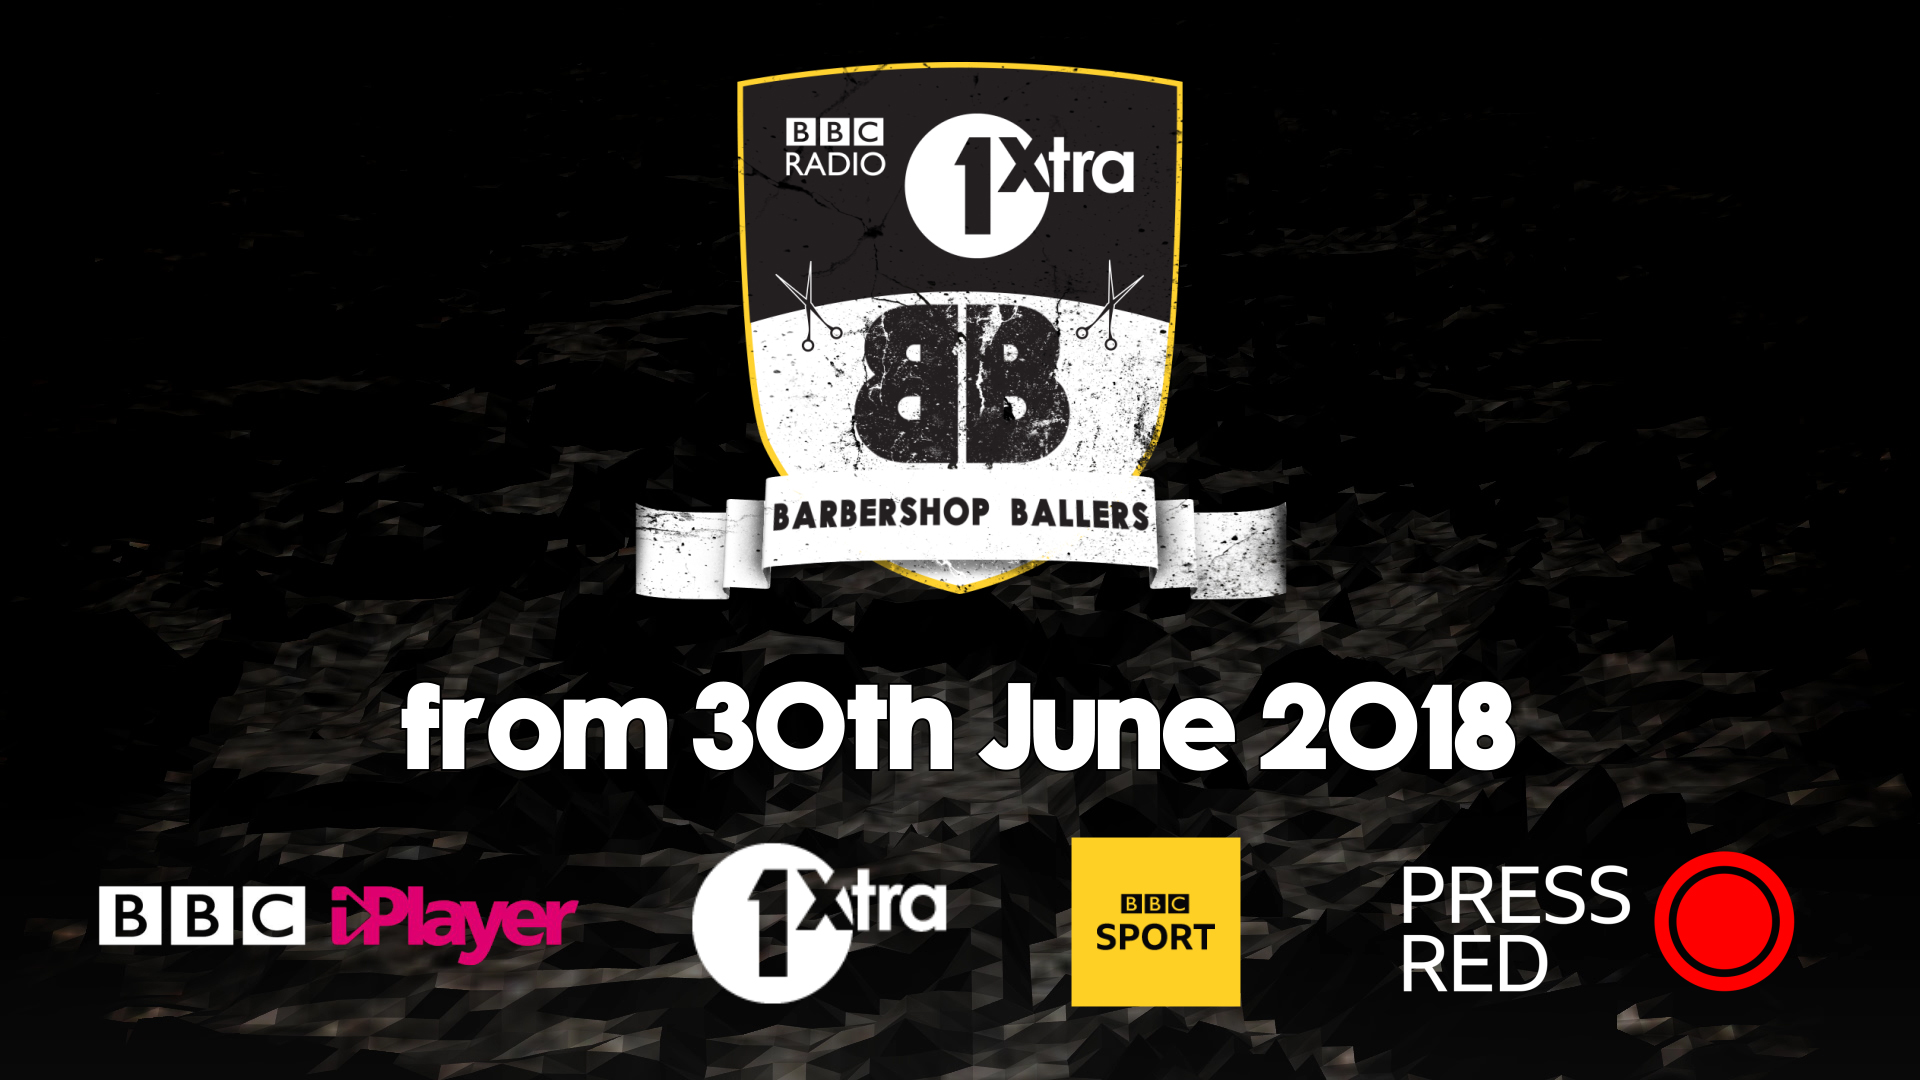 World Cup 2018: Barbershop Ballers alternative review show begins on 30 June